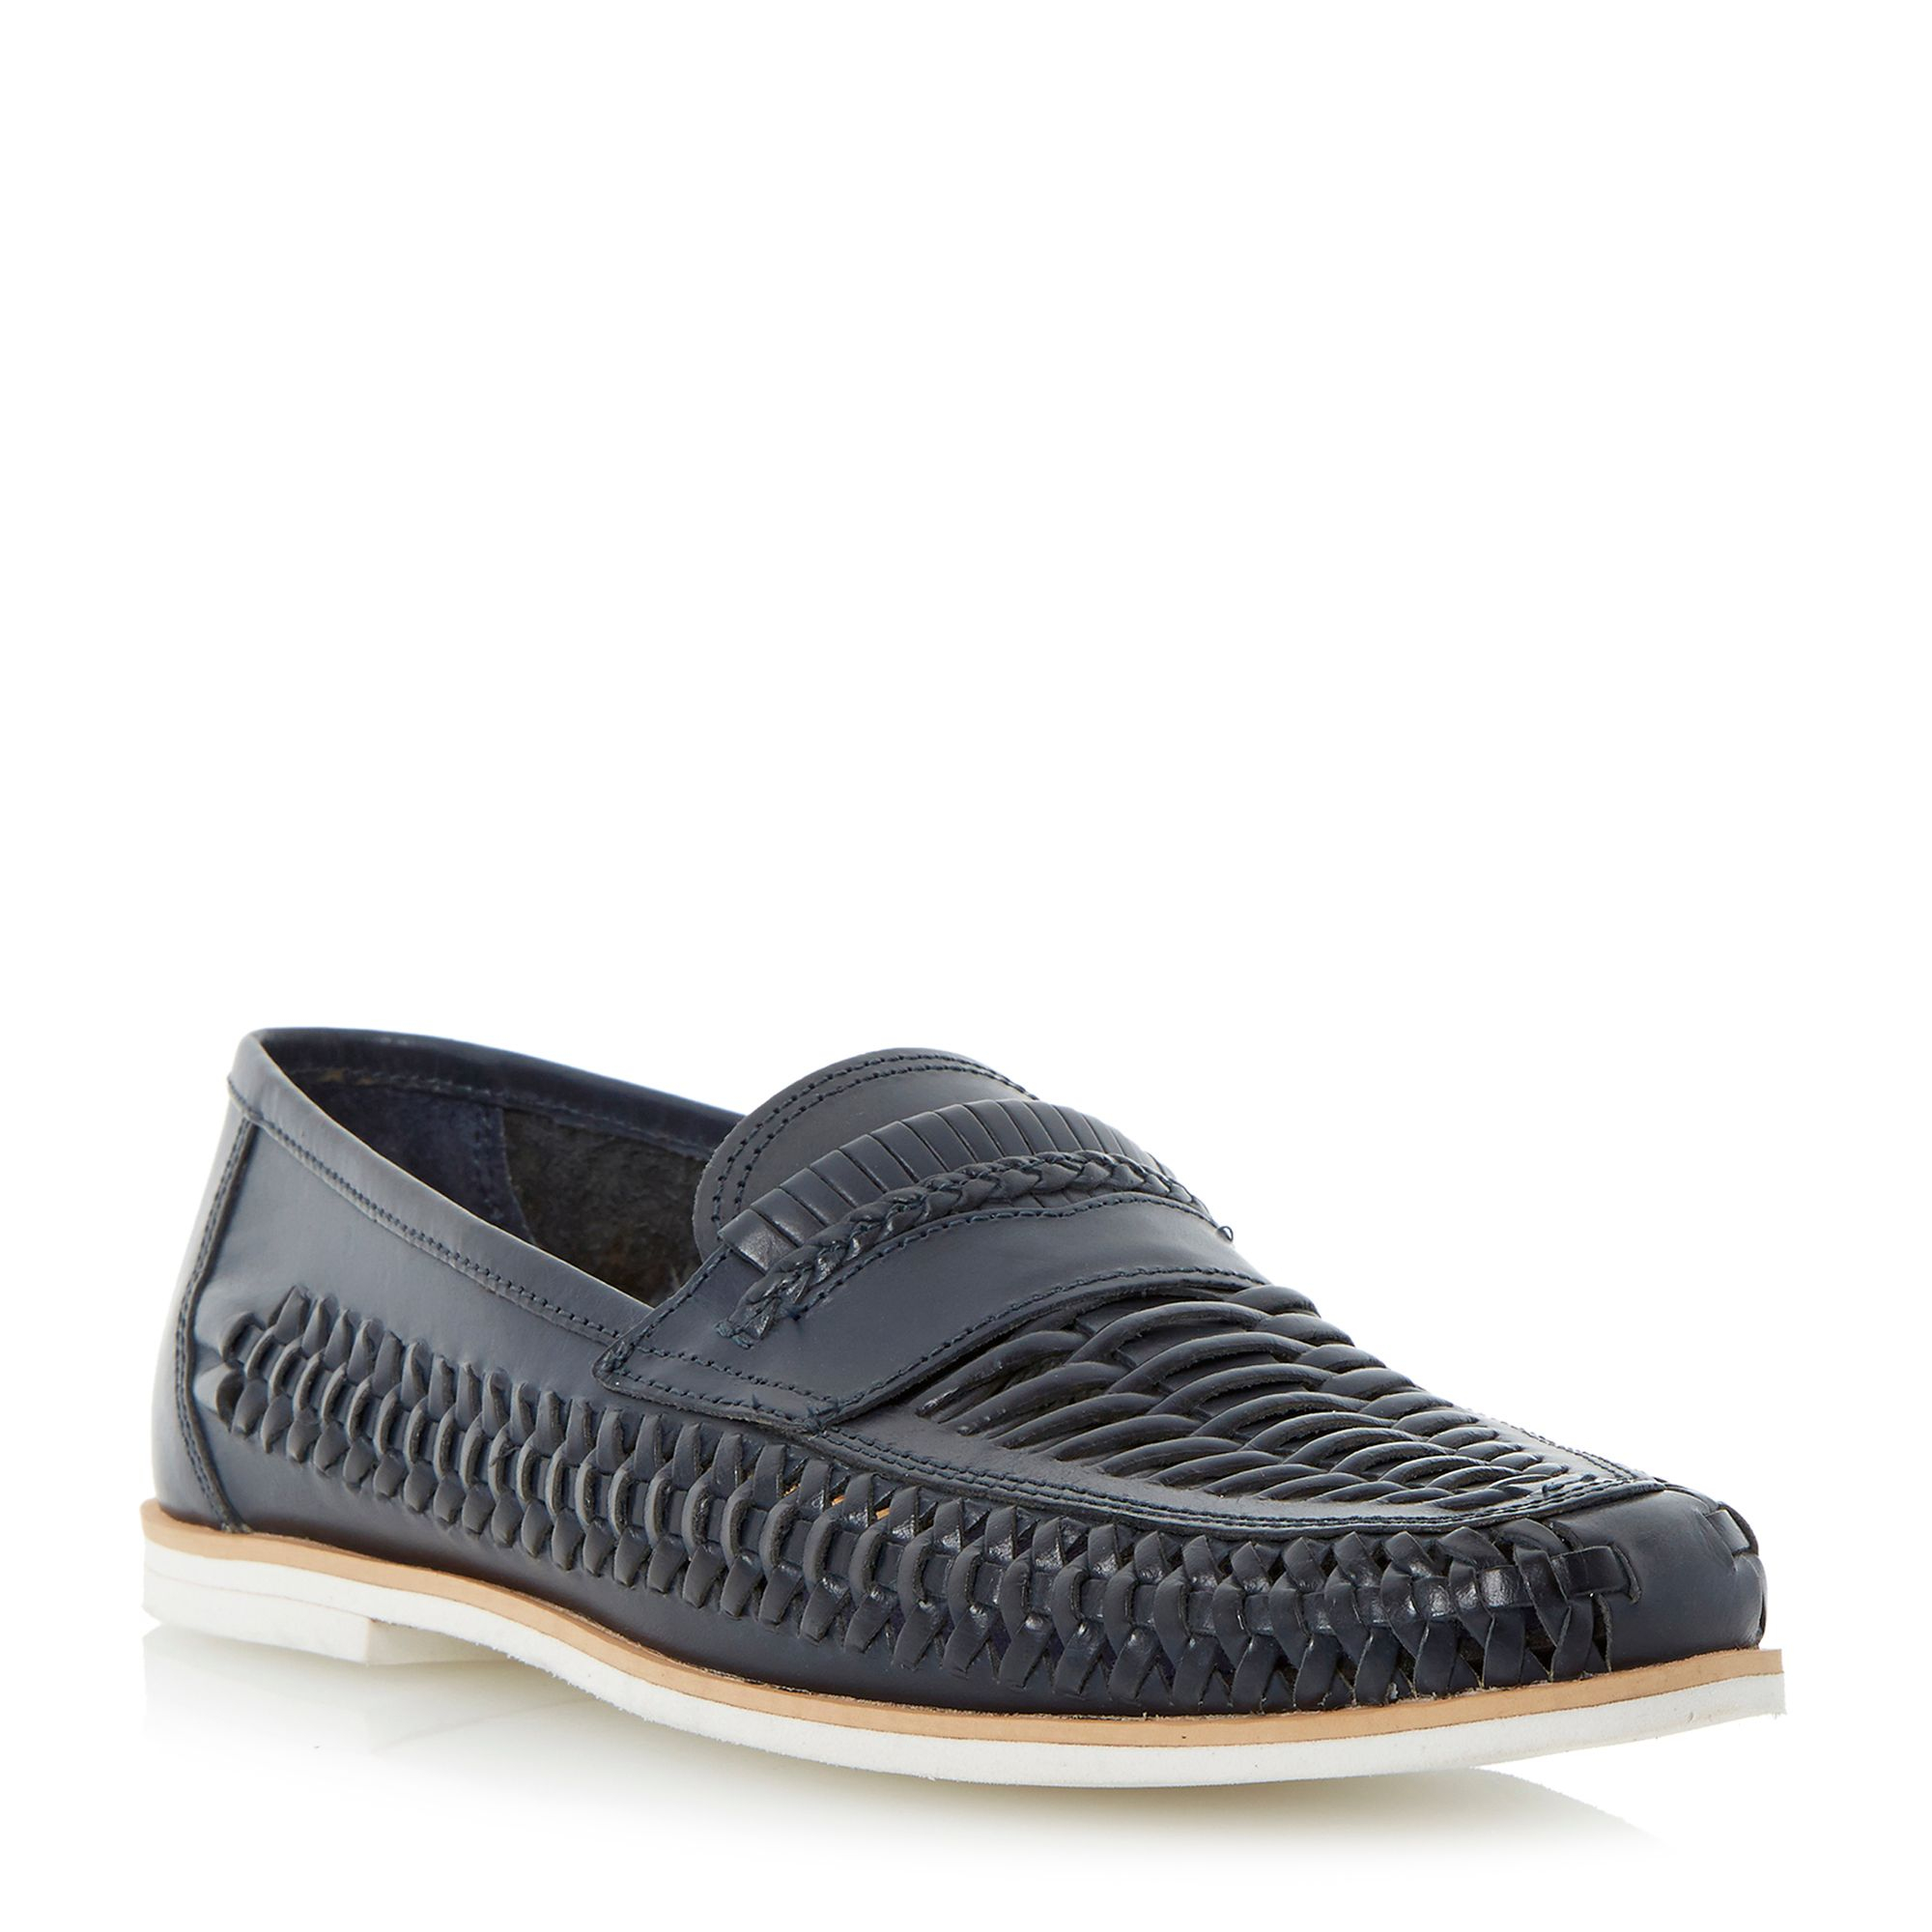 Bertie Leather Bryant Park Woven Moccassins in Navy (Blue) for Men